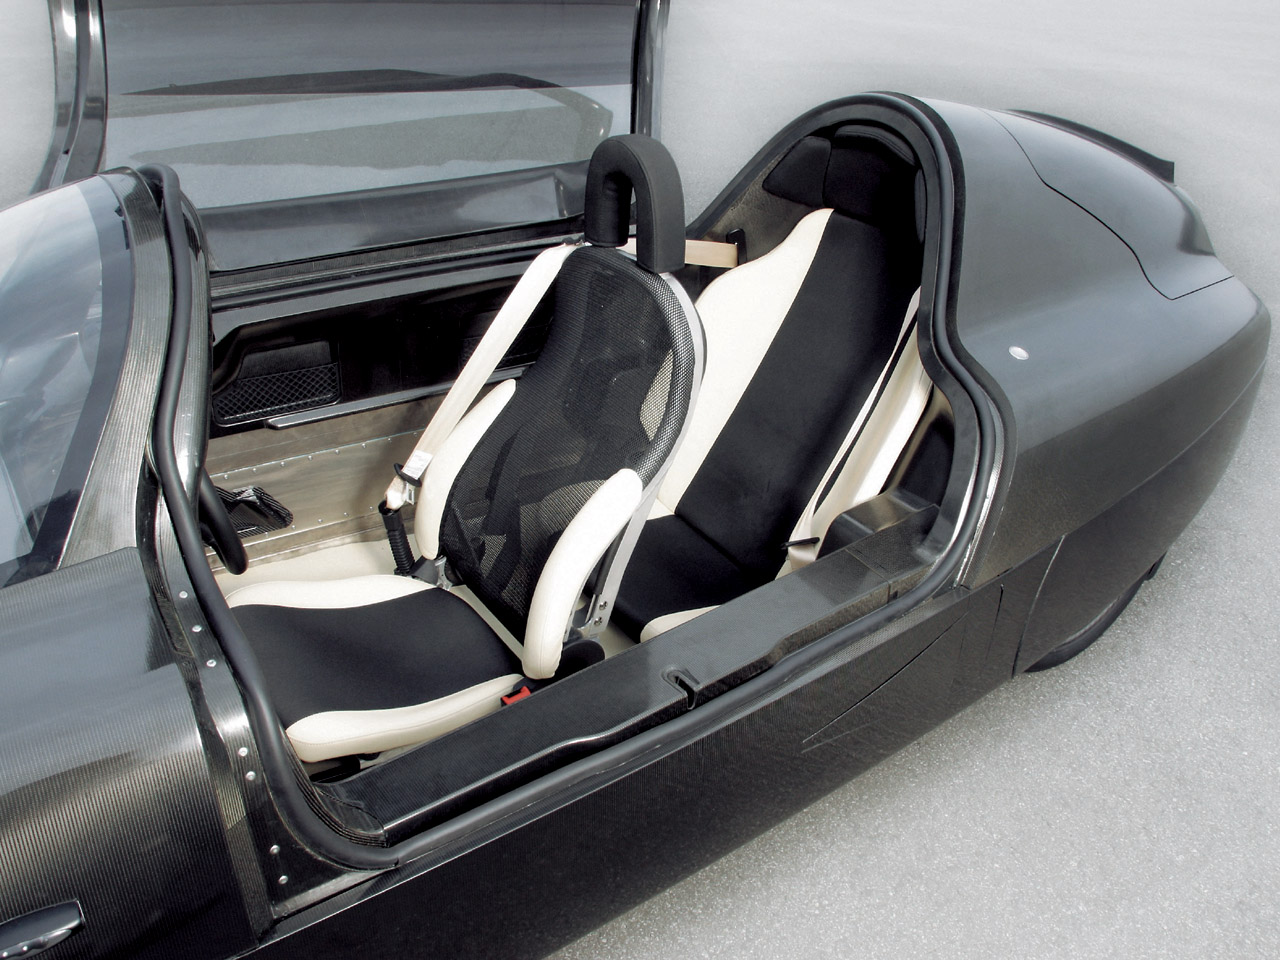 Volkswagen S Single Seater 1 Liter Car Made Using E Technology I Like To Waste My Time